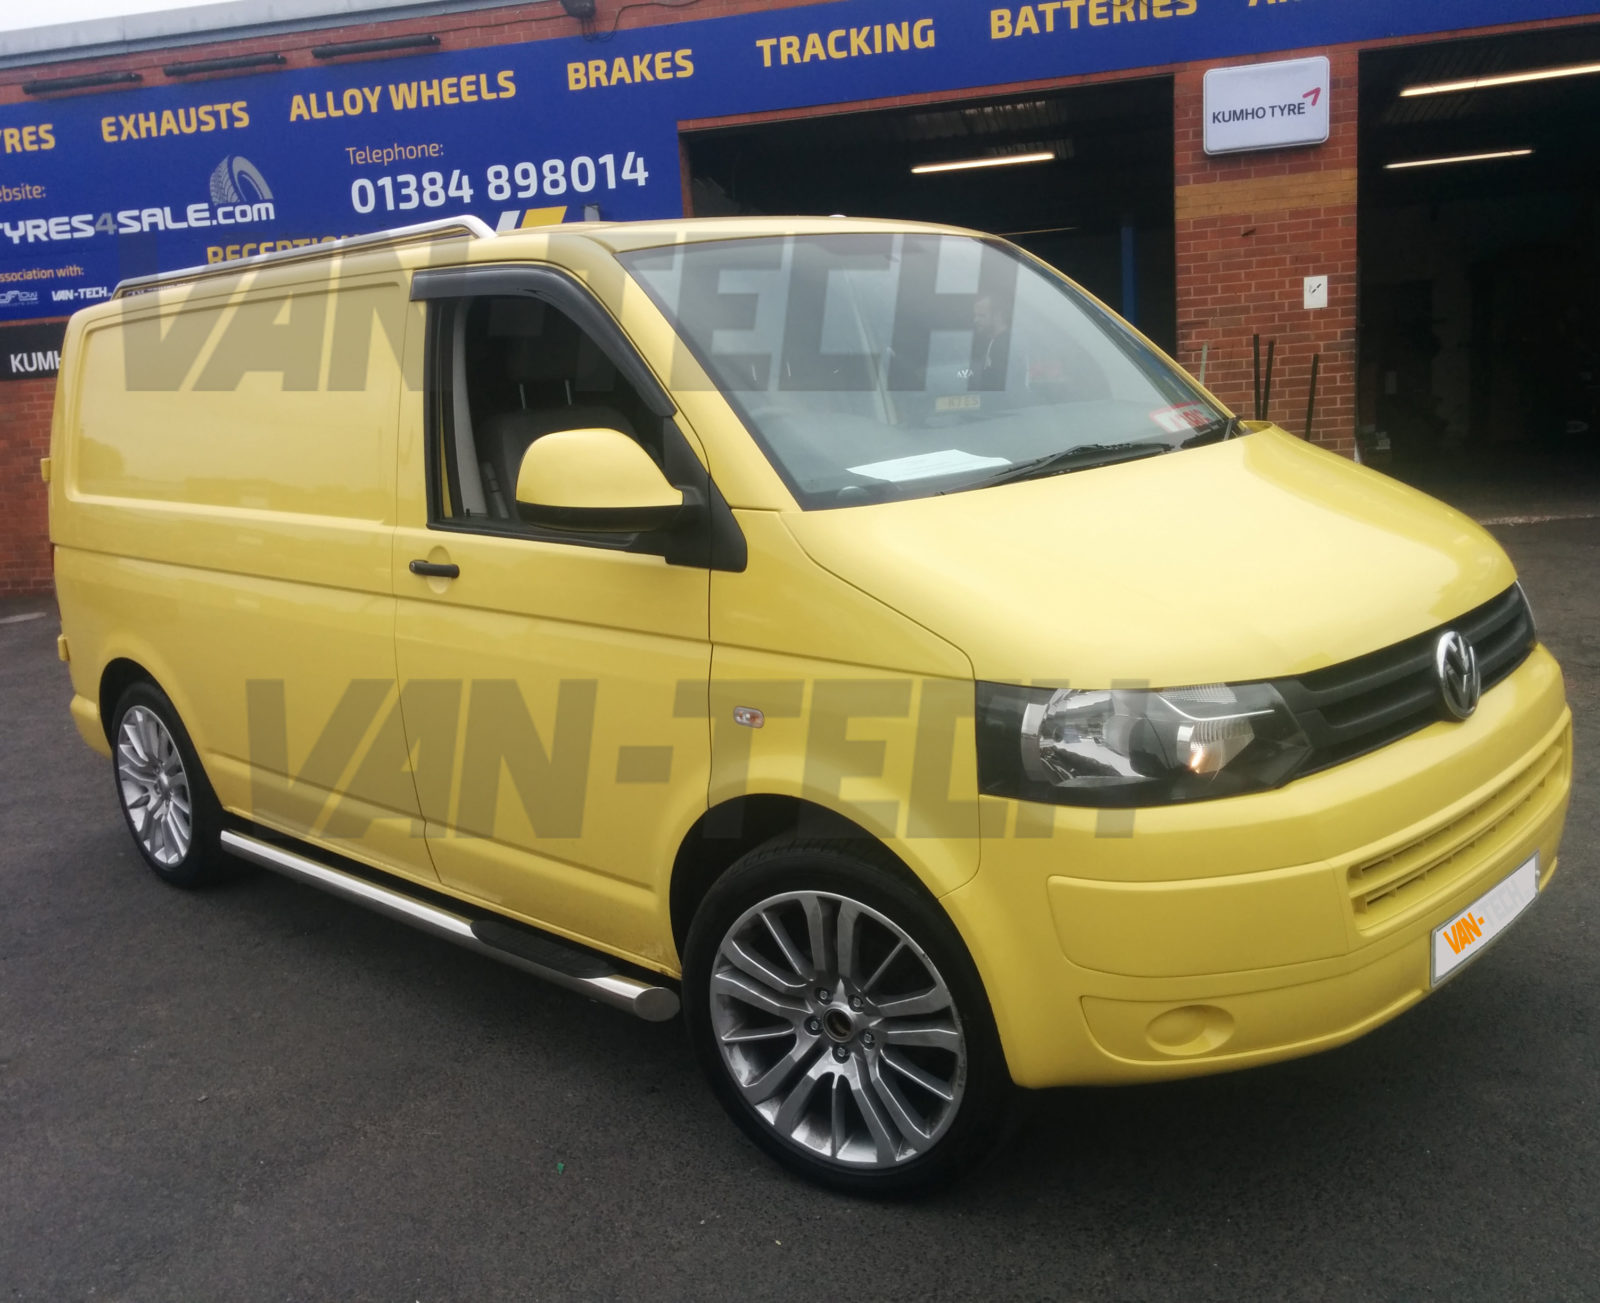 Vw T5 Swb Lwb Stainless Steel Roof Rails Van Tech